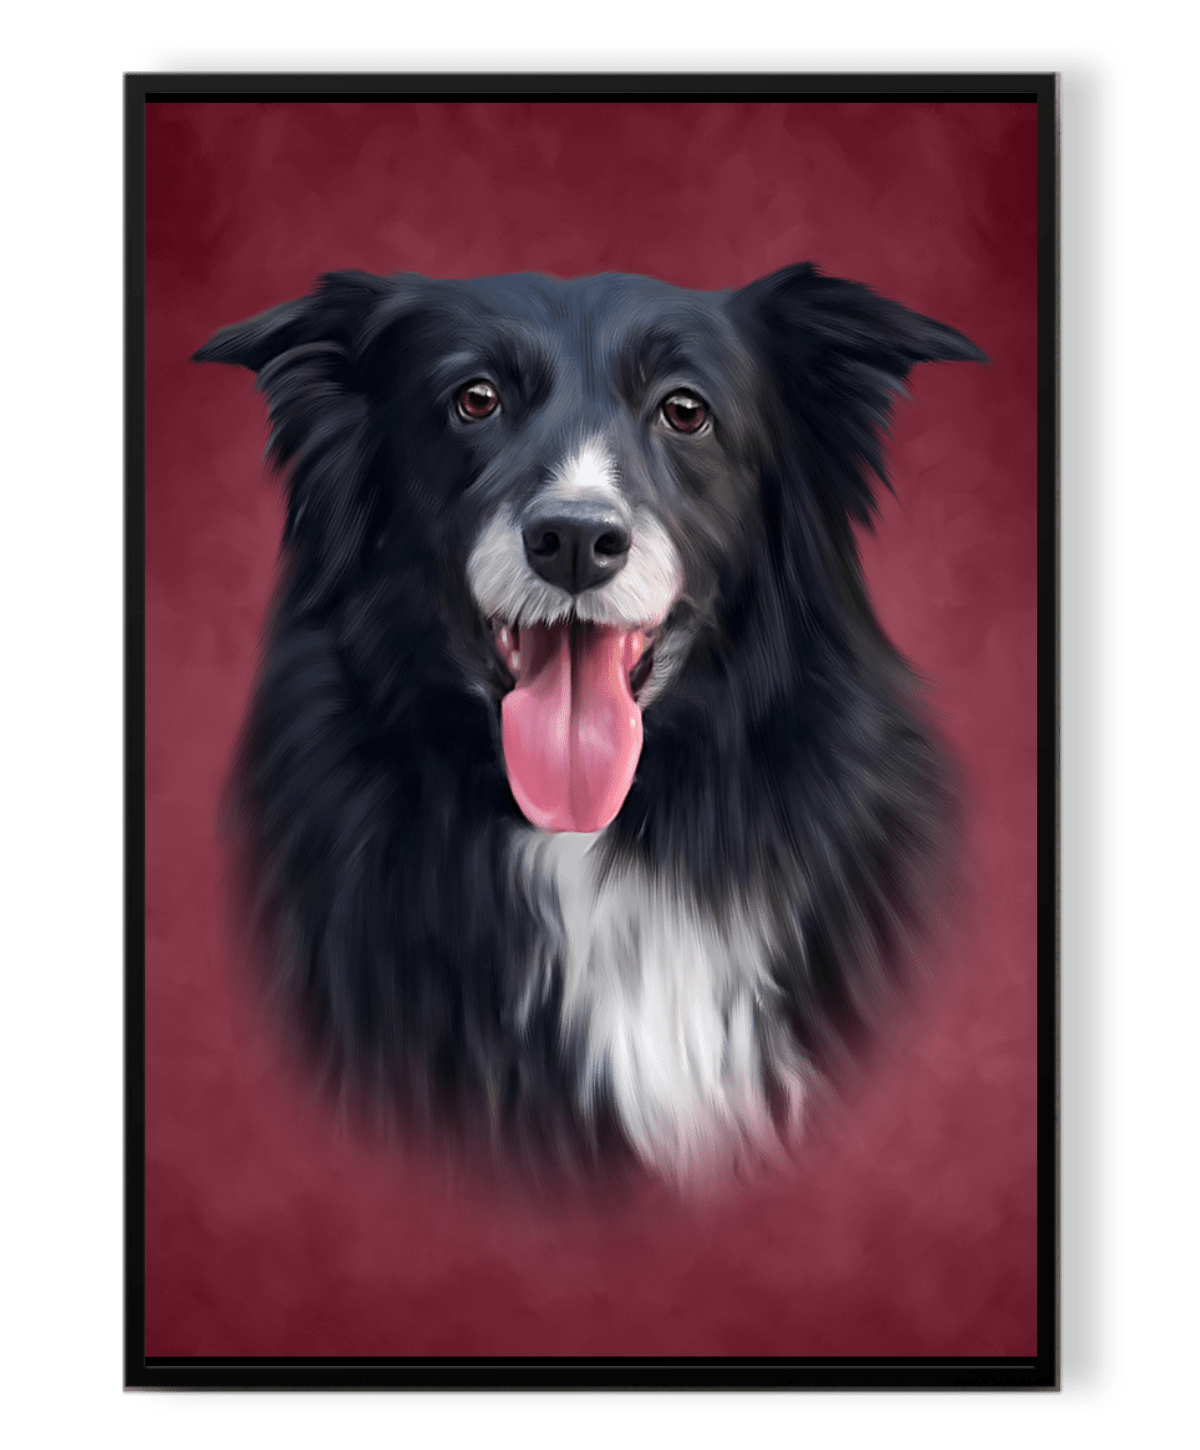 One dog on inside a frame with red background